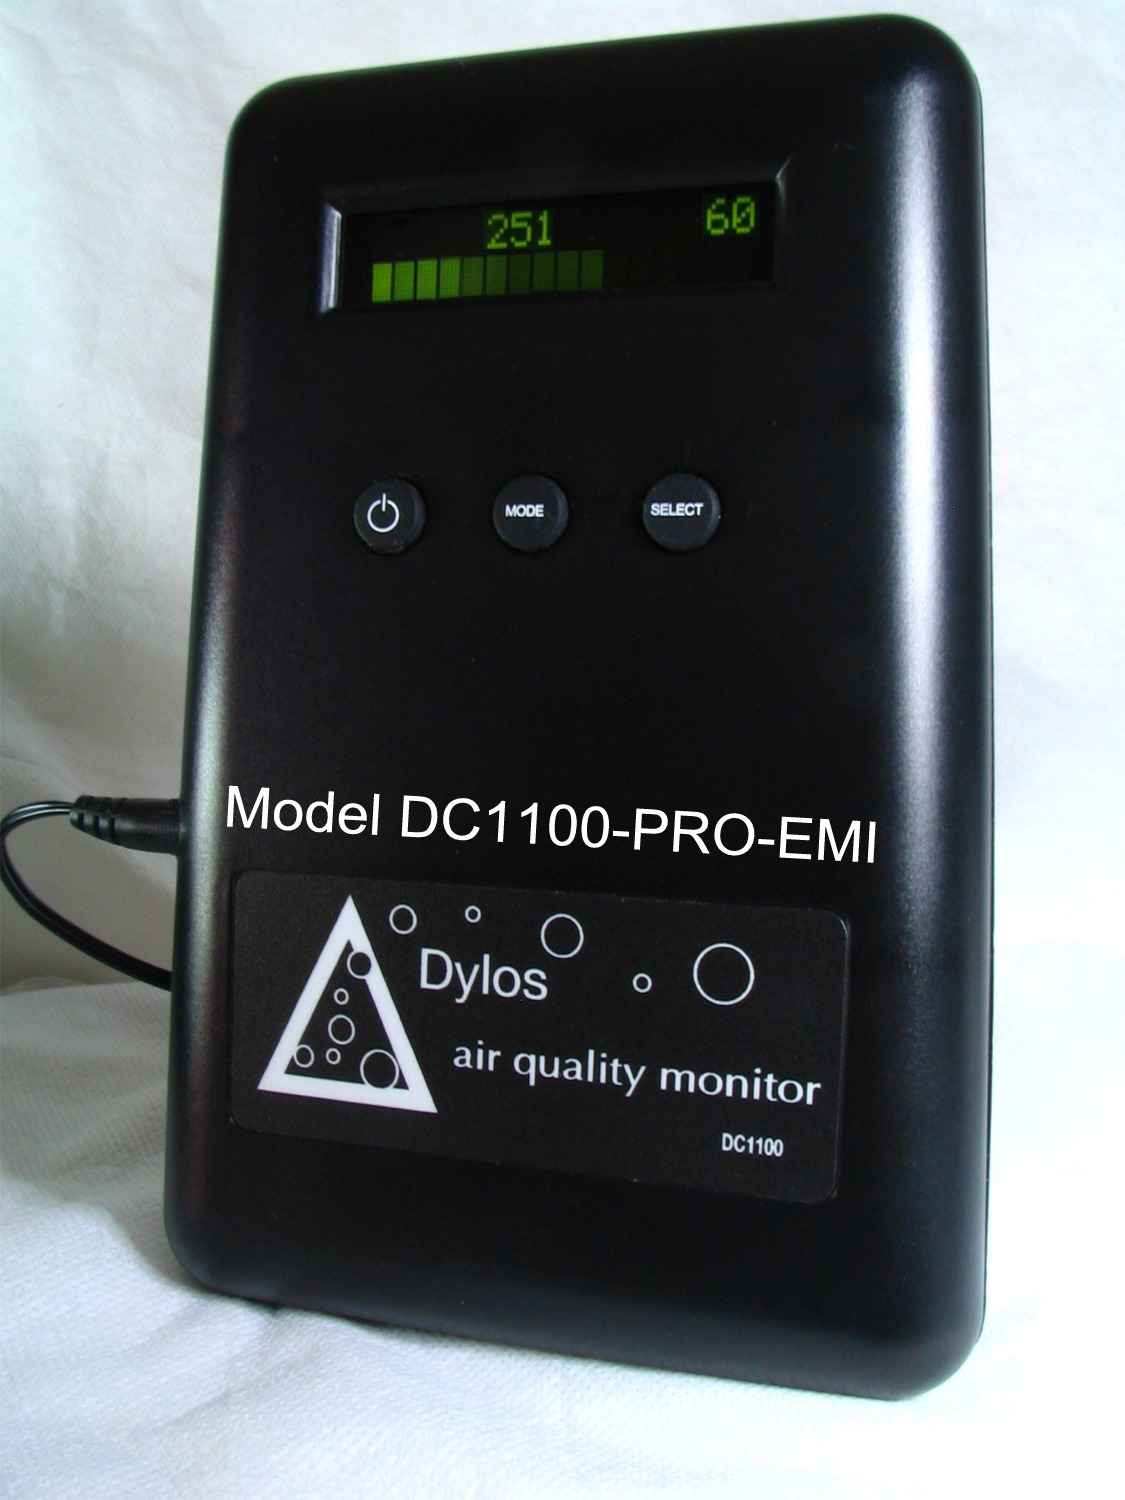 Dylos Laser Air Quality Monitor Model DC1100Pro-EMI